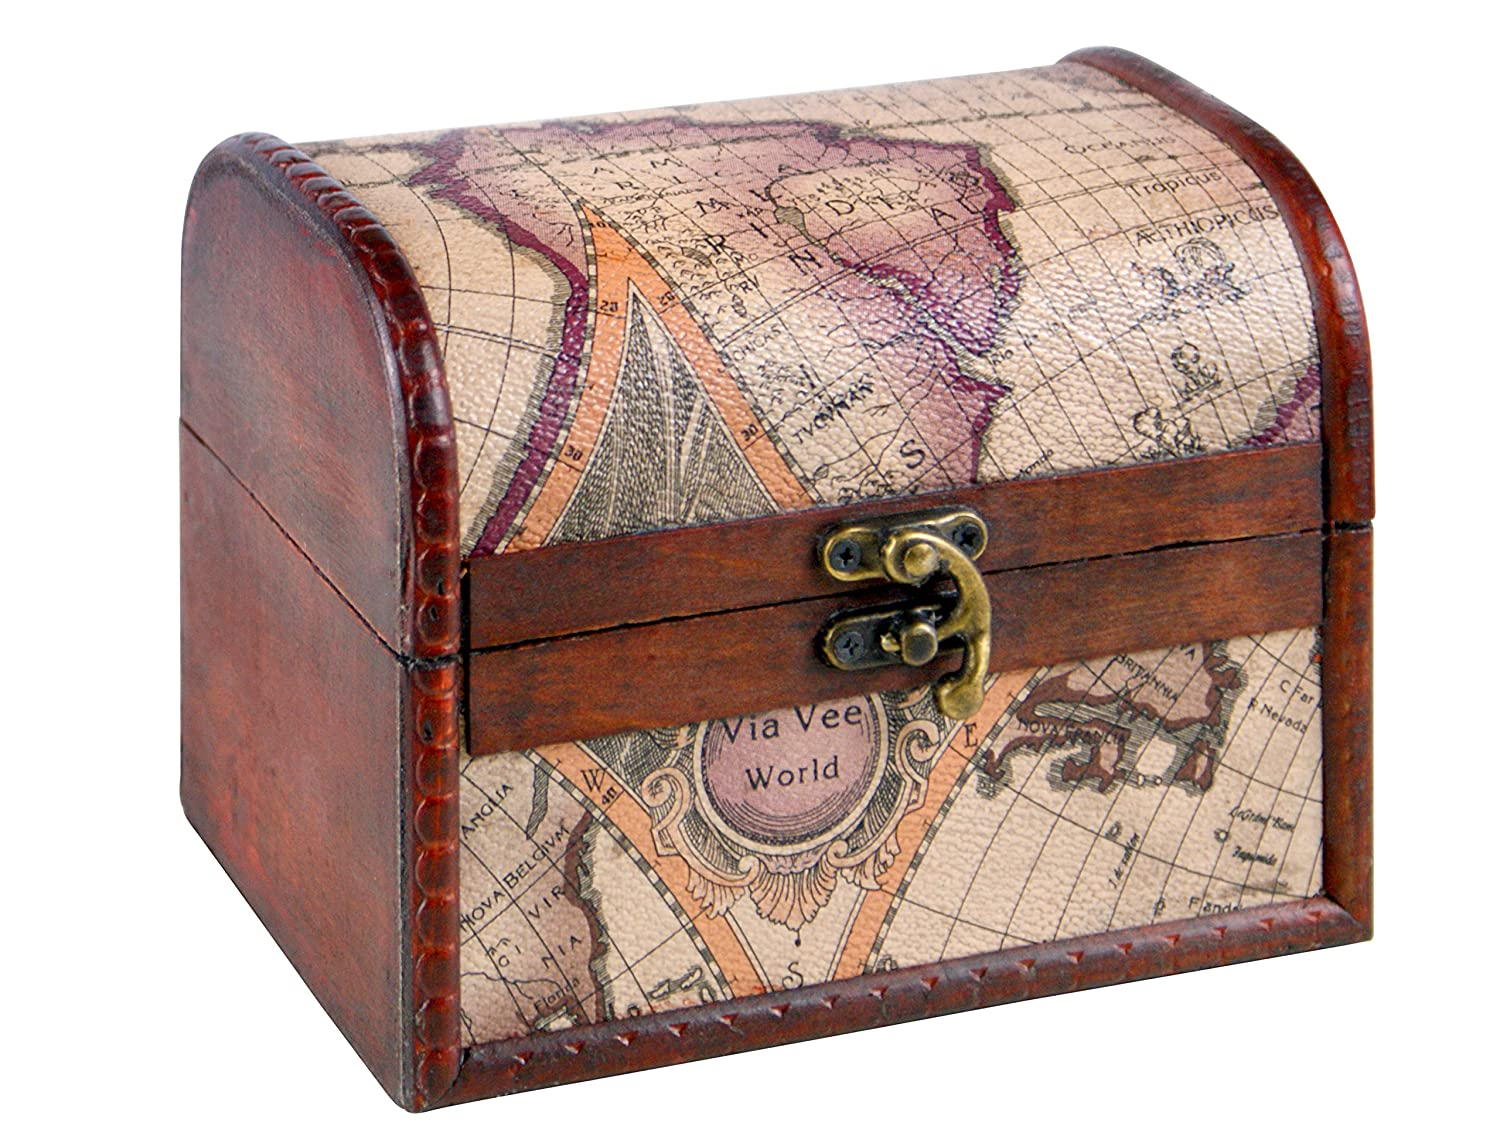 Brynnberg large treasure chest with Lock with Key, Decopackage